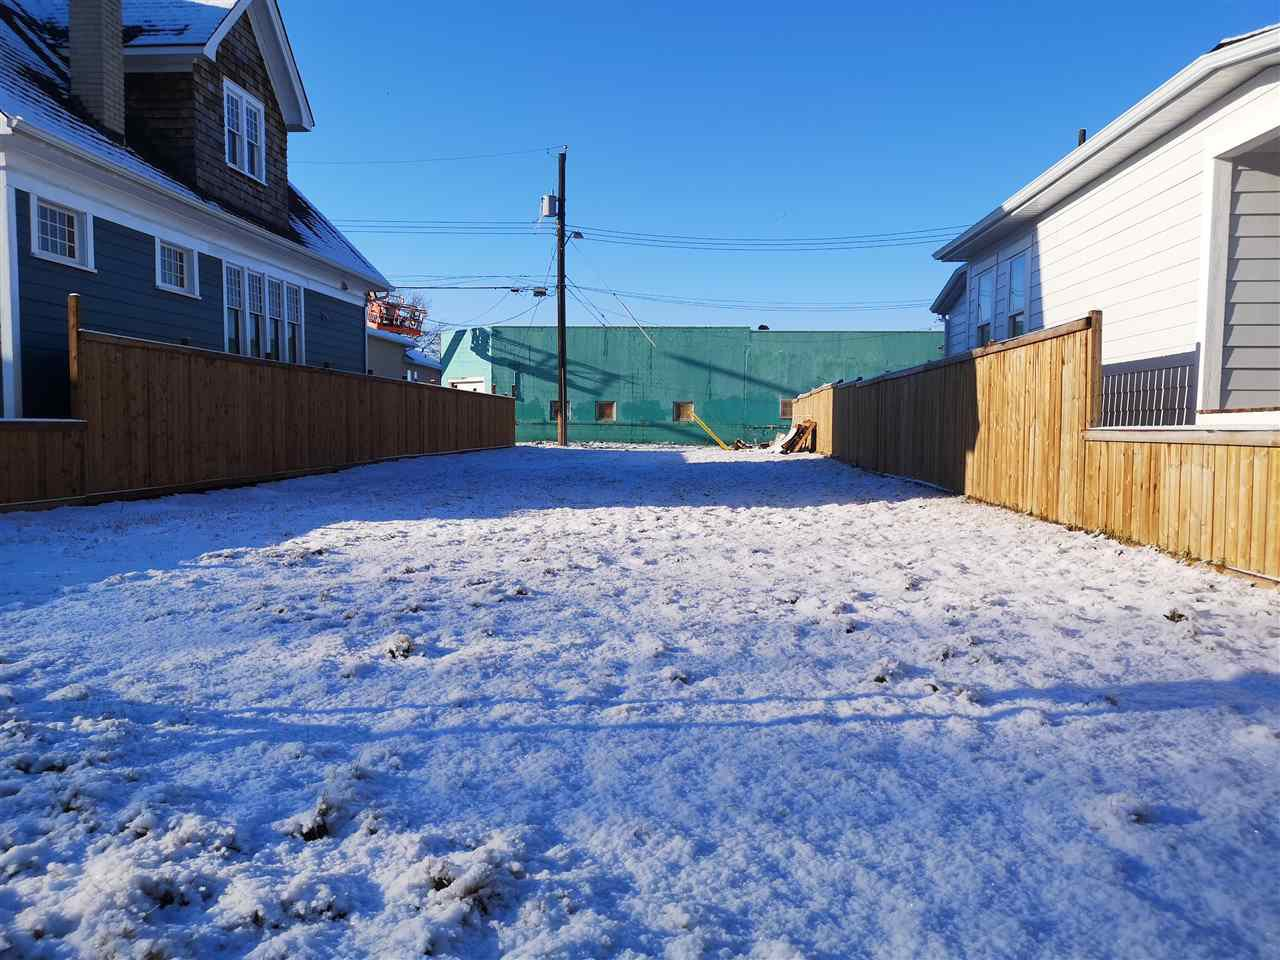 Main Photo: 11742 96 Street in Edmonton: Zone 05 Land Commercial for sale : MLS®# E4201051